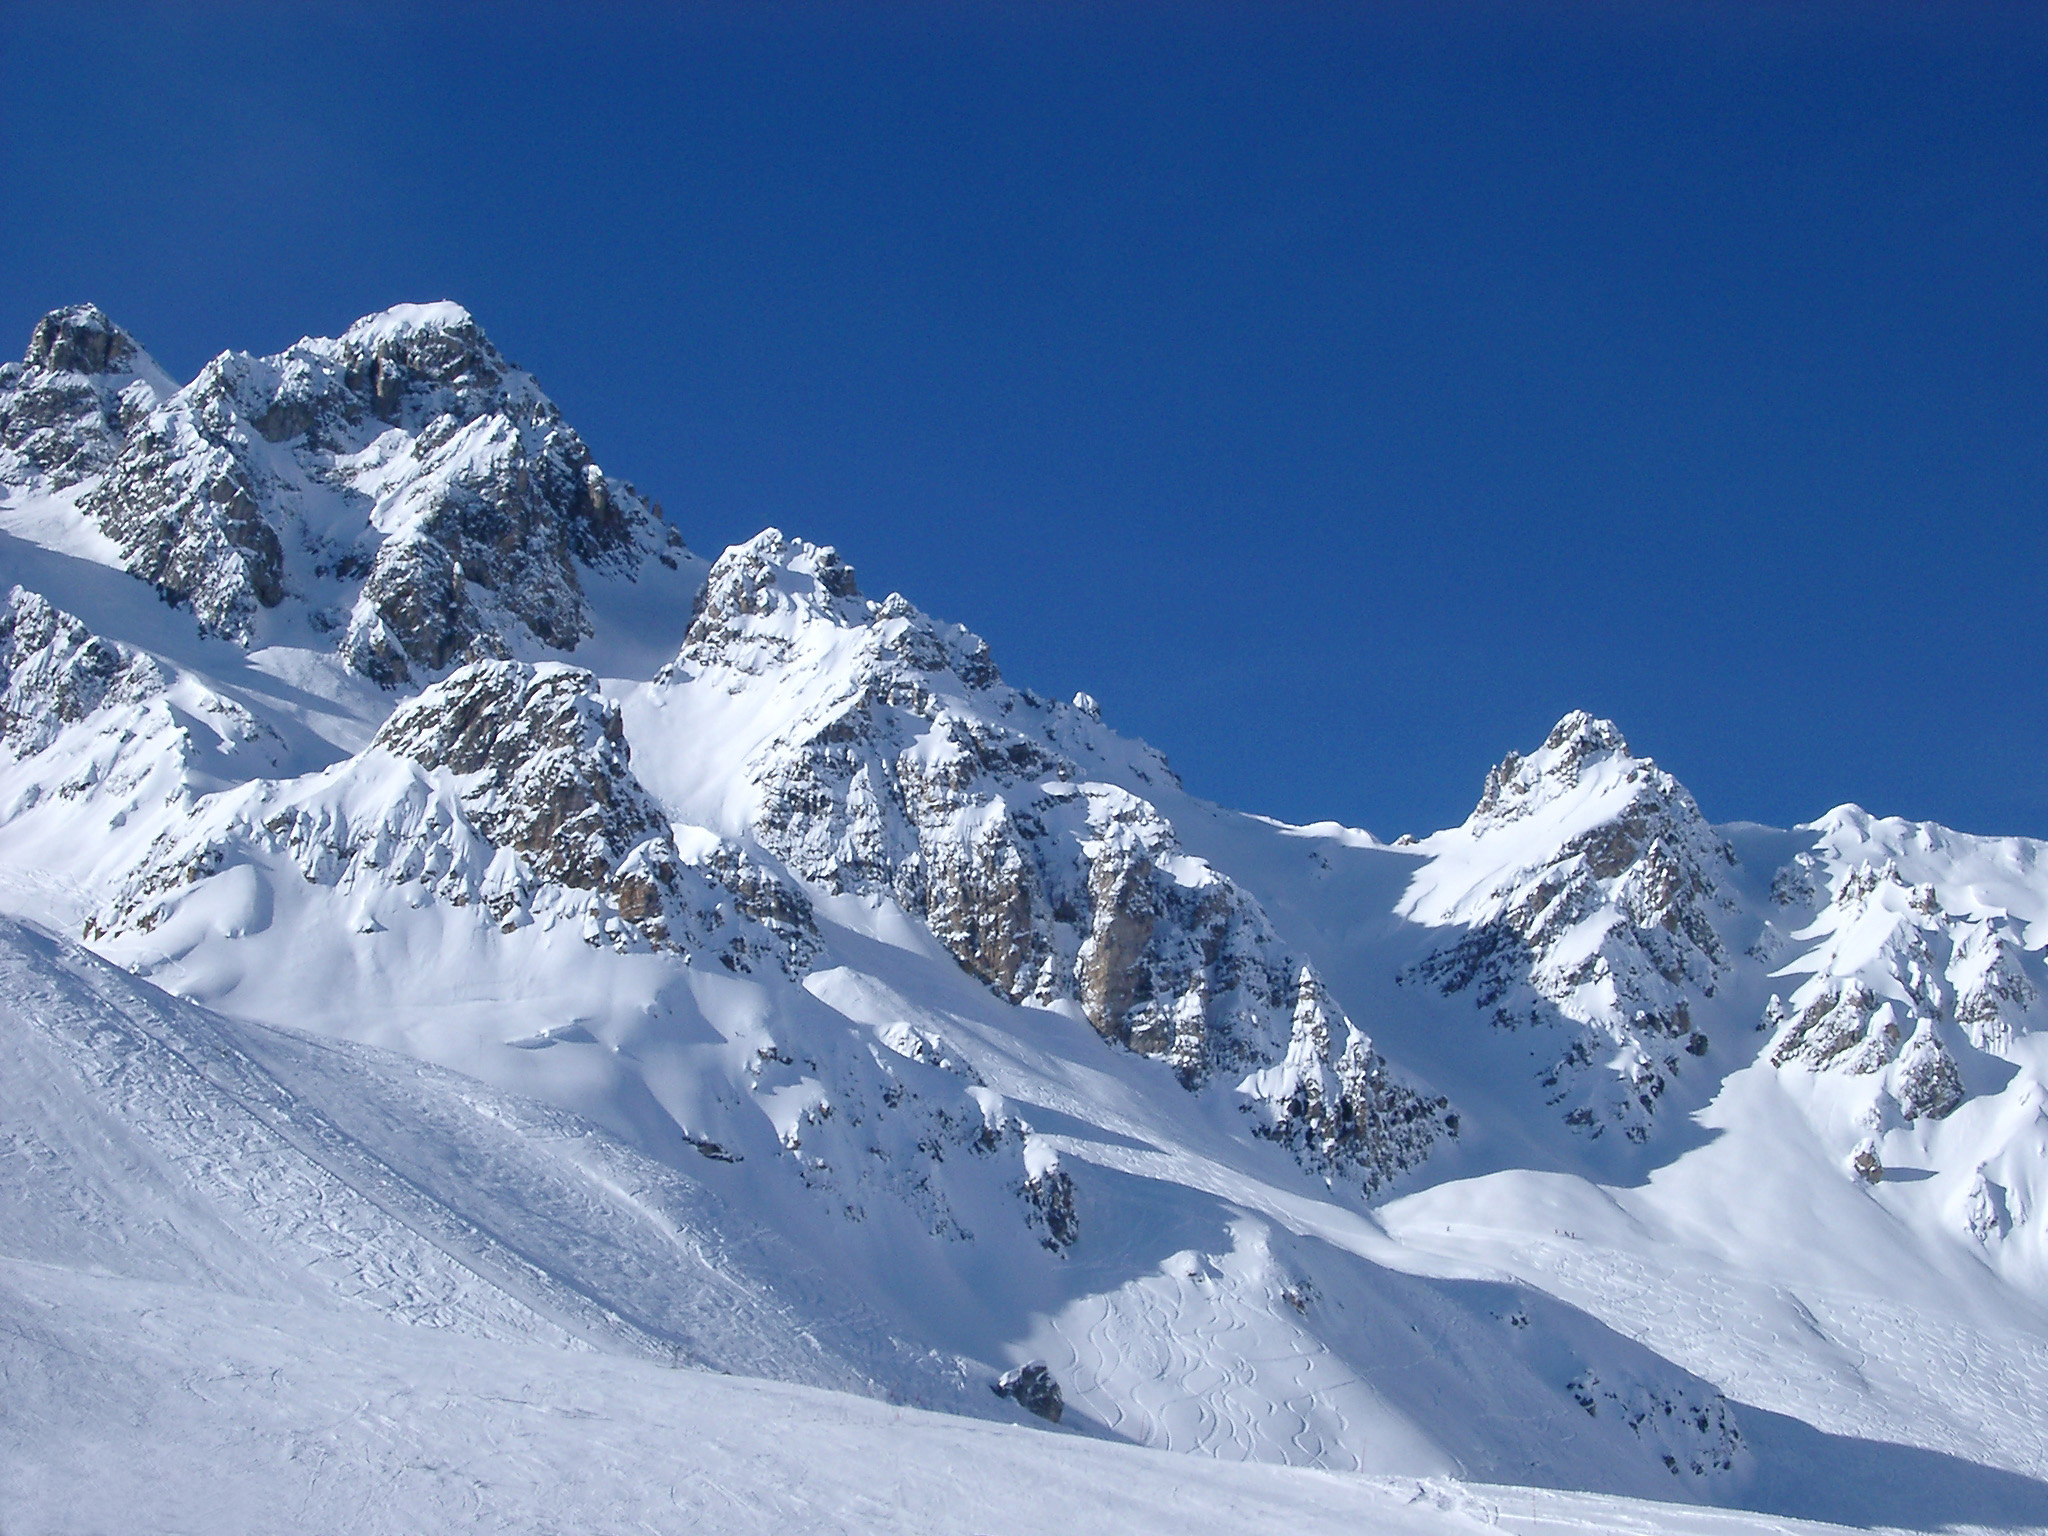 Snow covered rugged mountain peaks in France under a clear crisp blue winter sky in a spectacular landscape